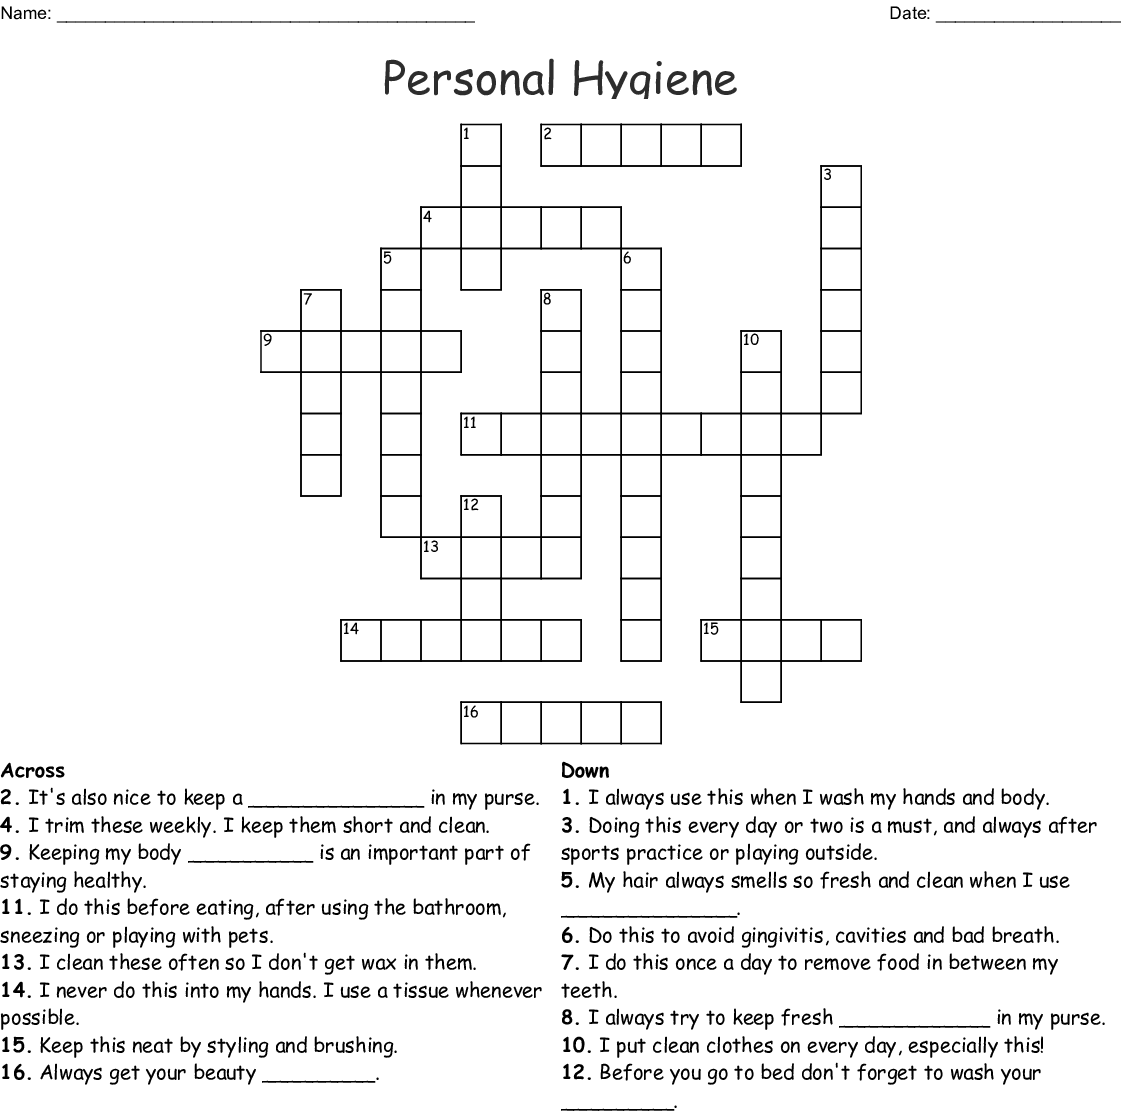 Hand Hygiene Crossword